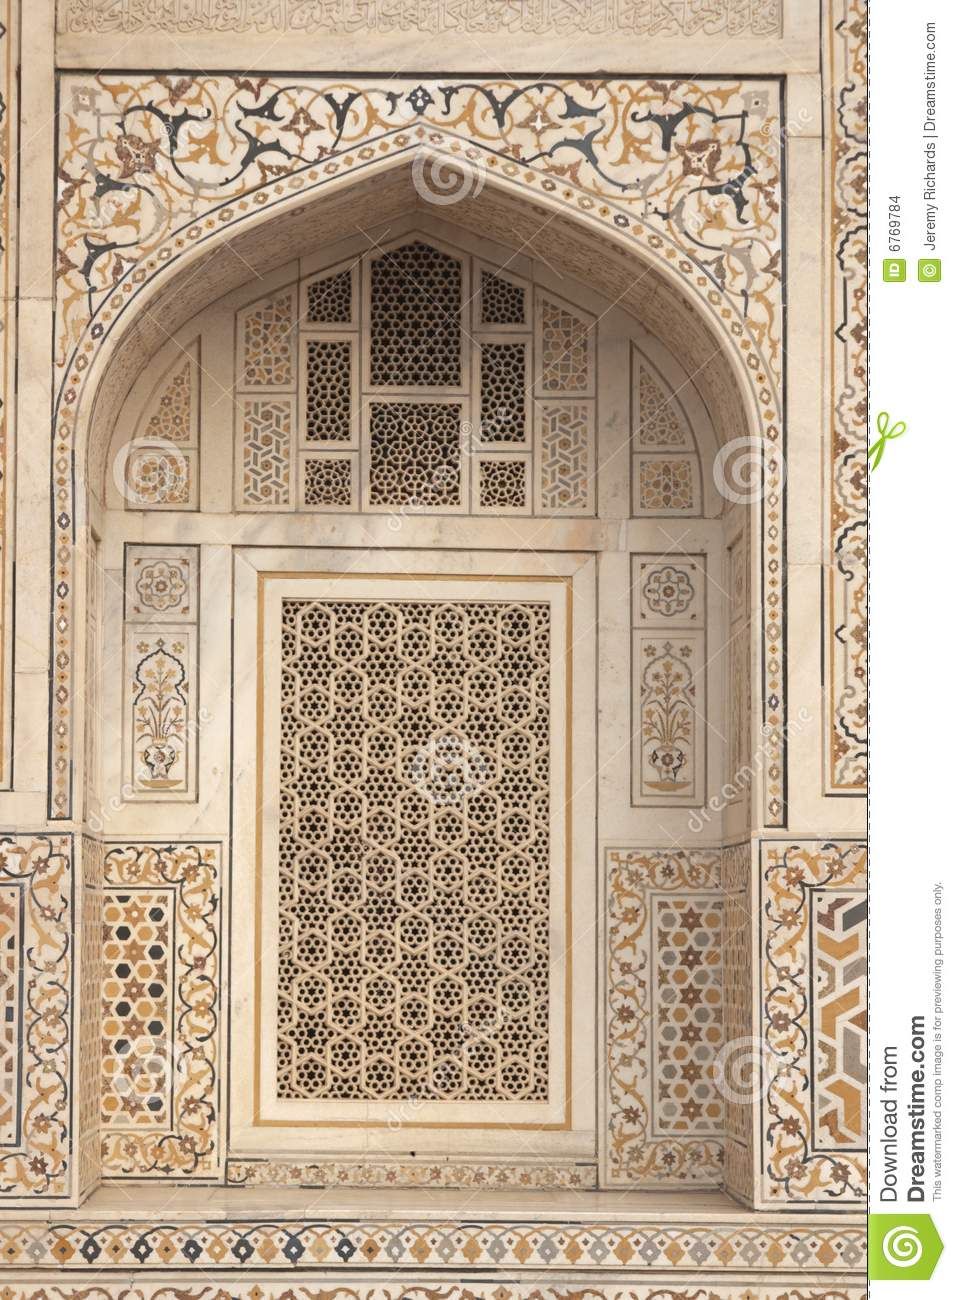 Inlaid Marble On Islamic Tomb Stock Photo Image Of Tomb